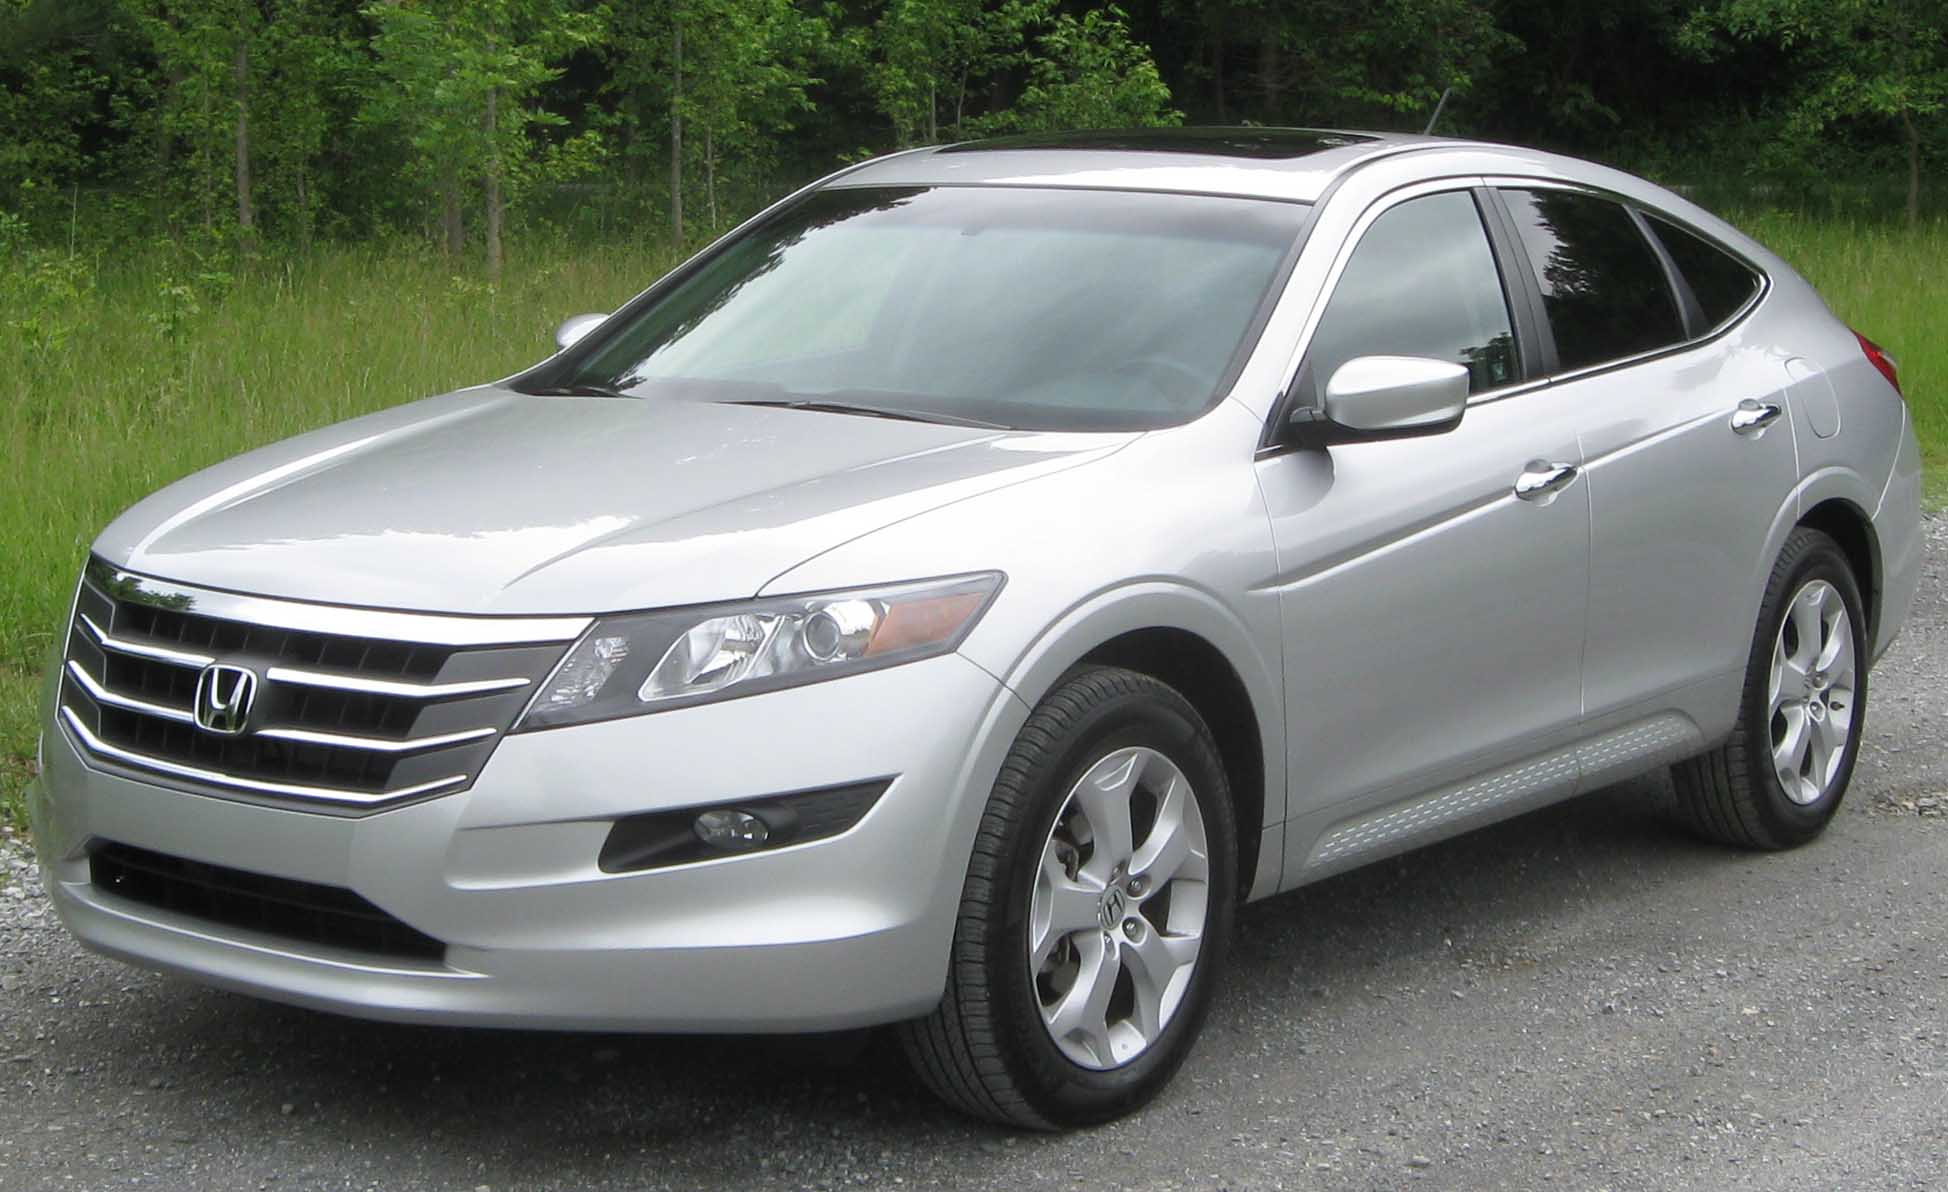 Honda Accord Crosstour EX-L #7